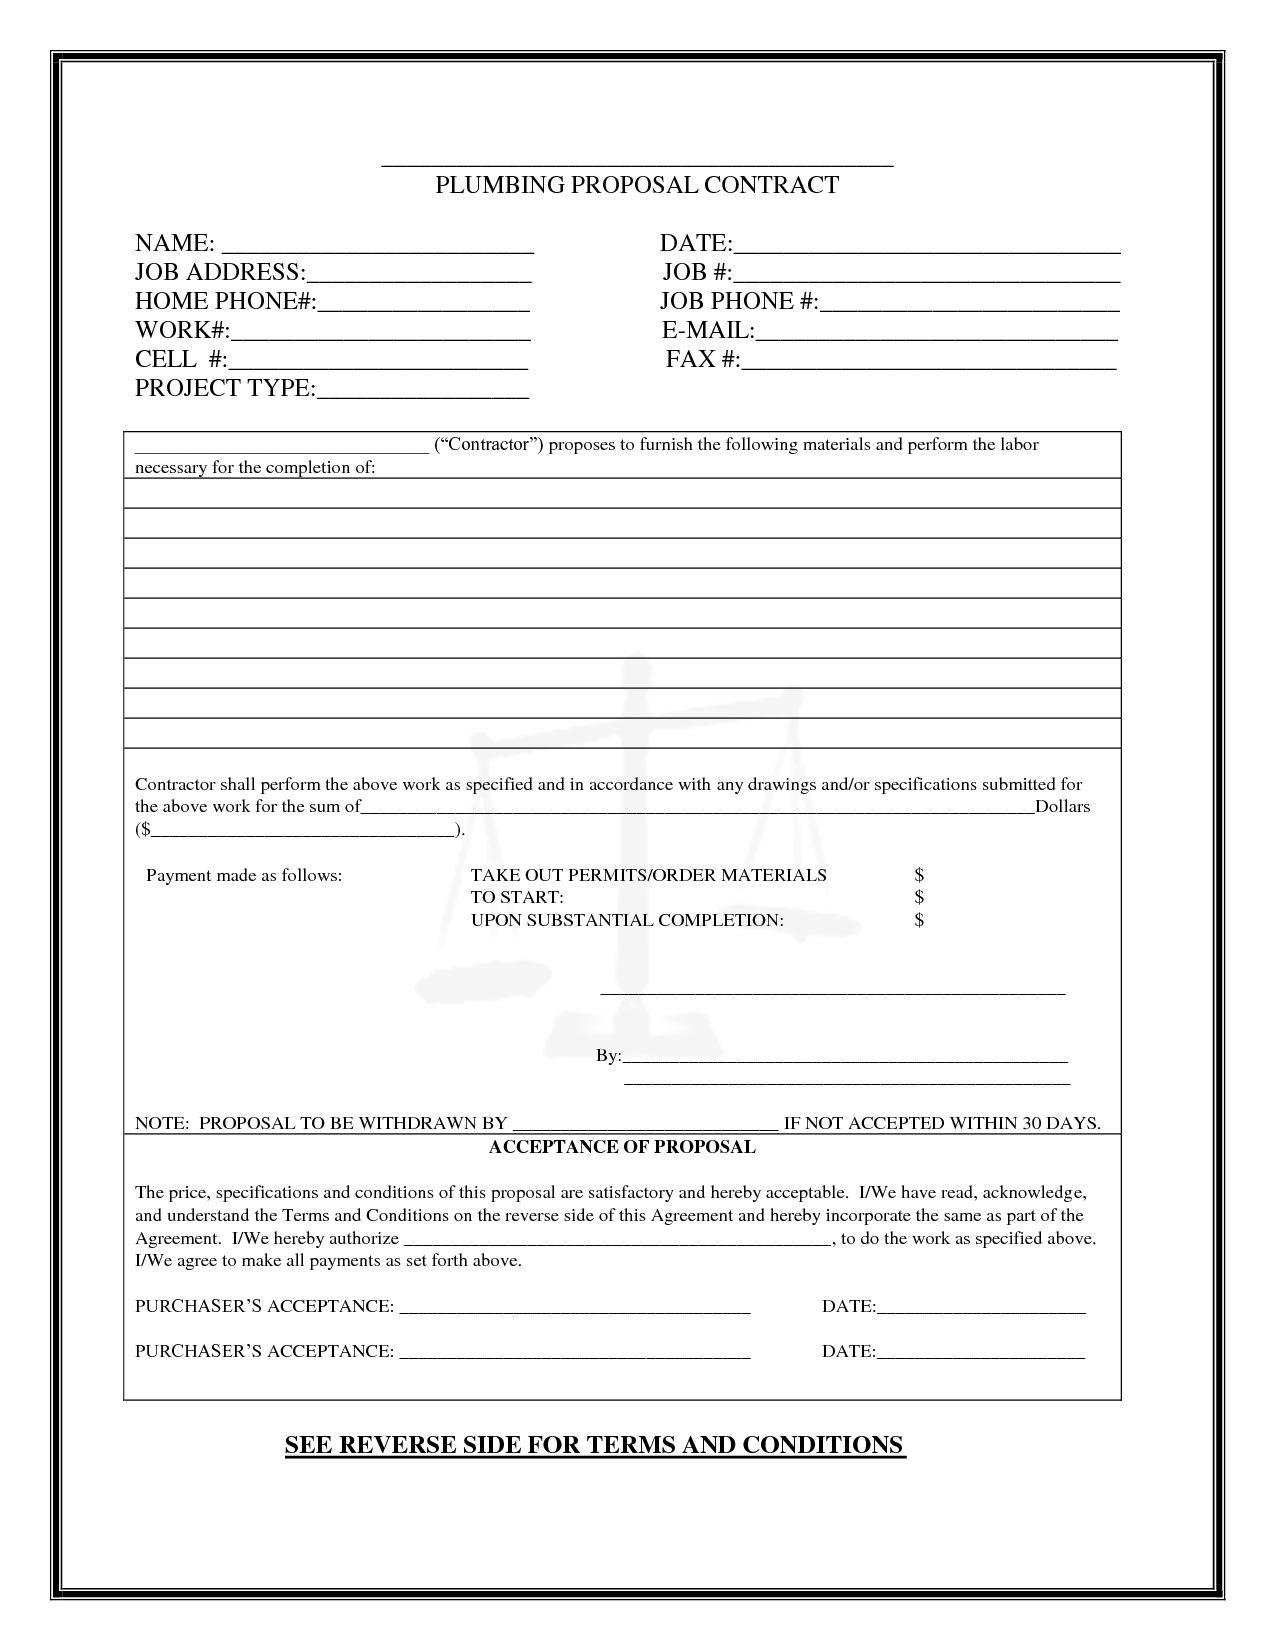 Pinboyvanss On Business | Proposal Templates, Templates - Free Printable Proposal Forms